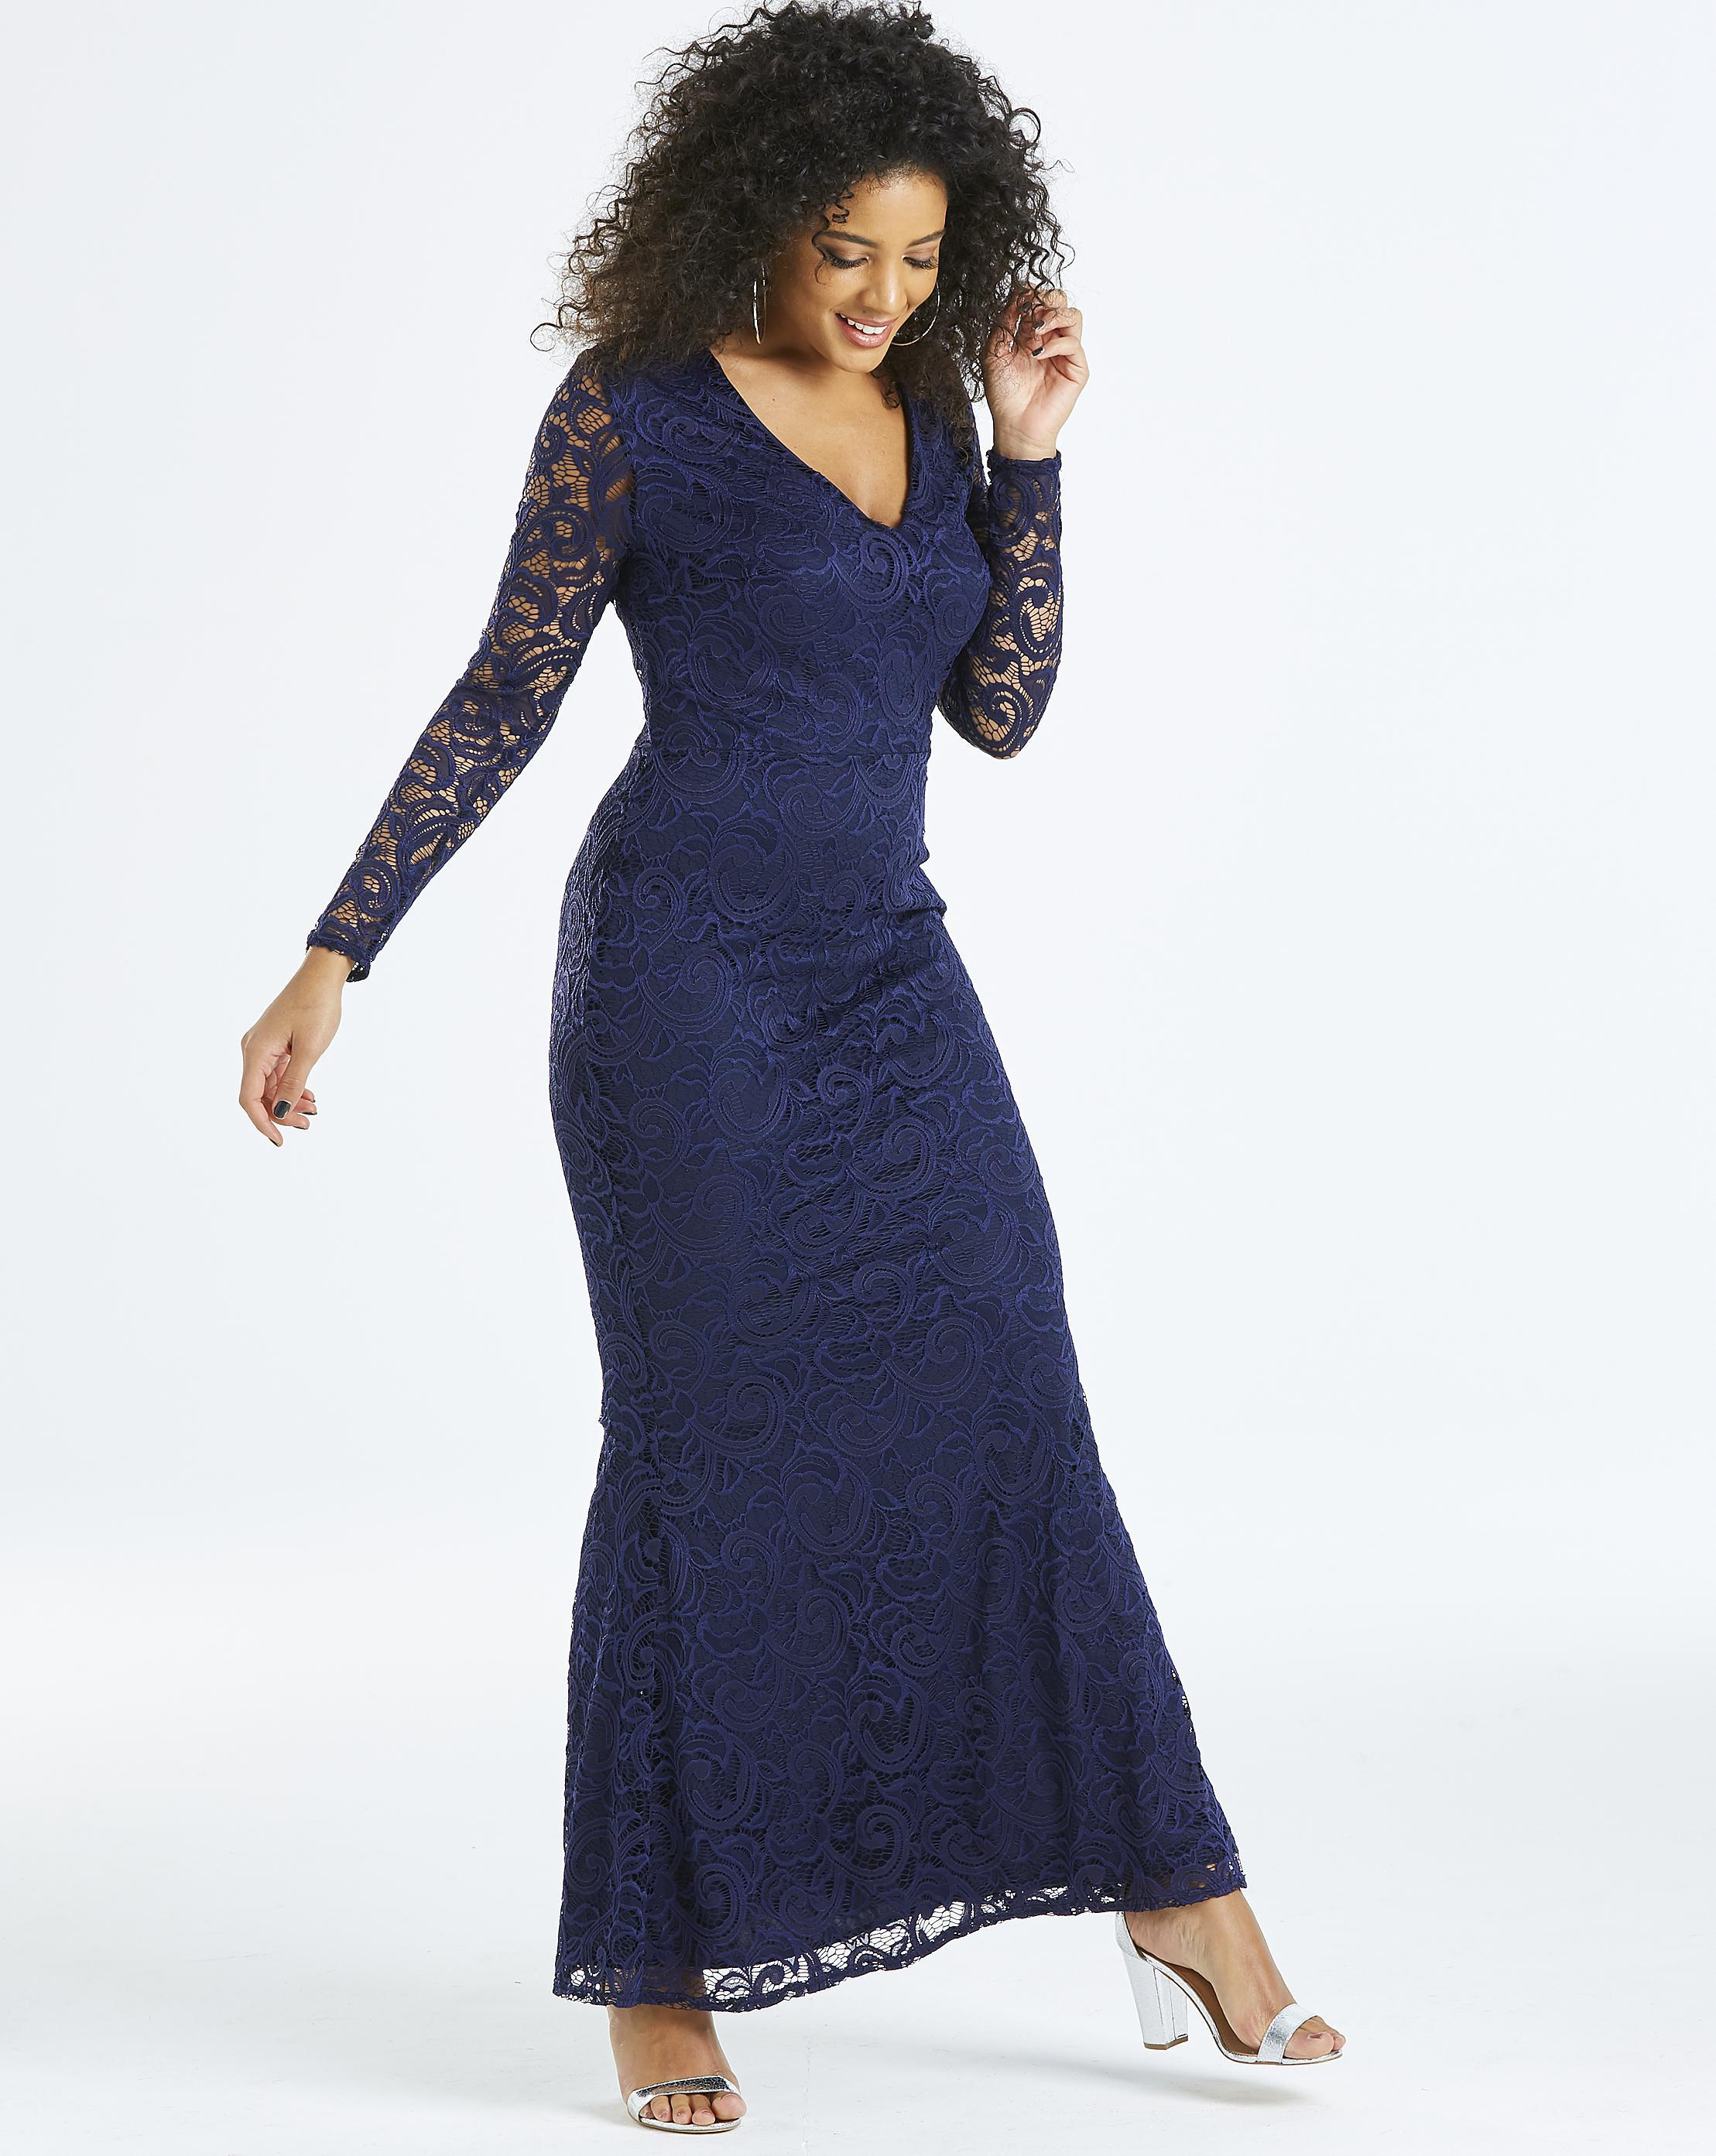 e998f2ede85 Lyst - Simply Be By Night Lace Fishtale Maxi Dress in Blue